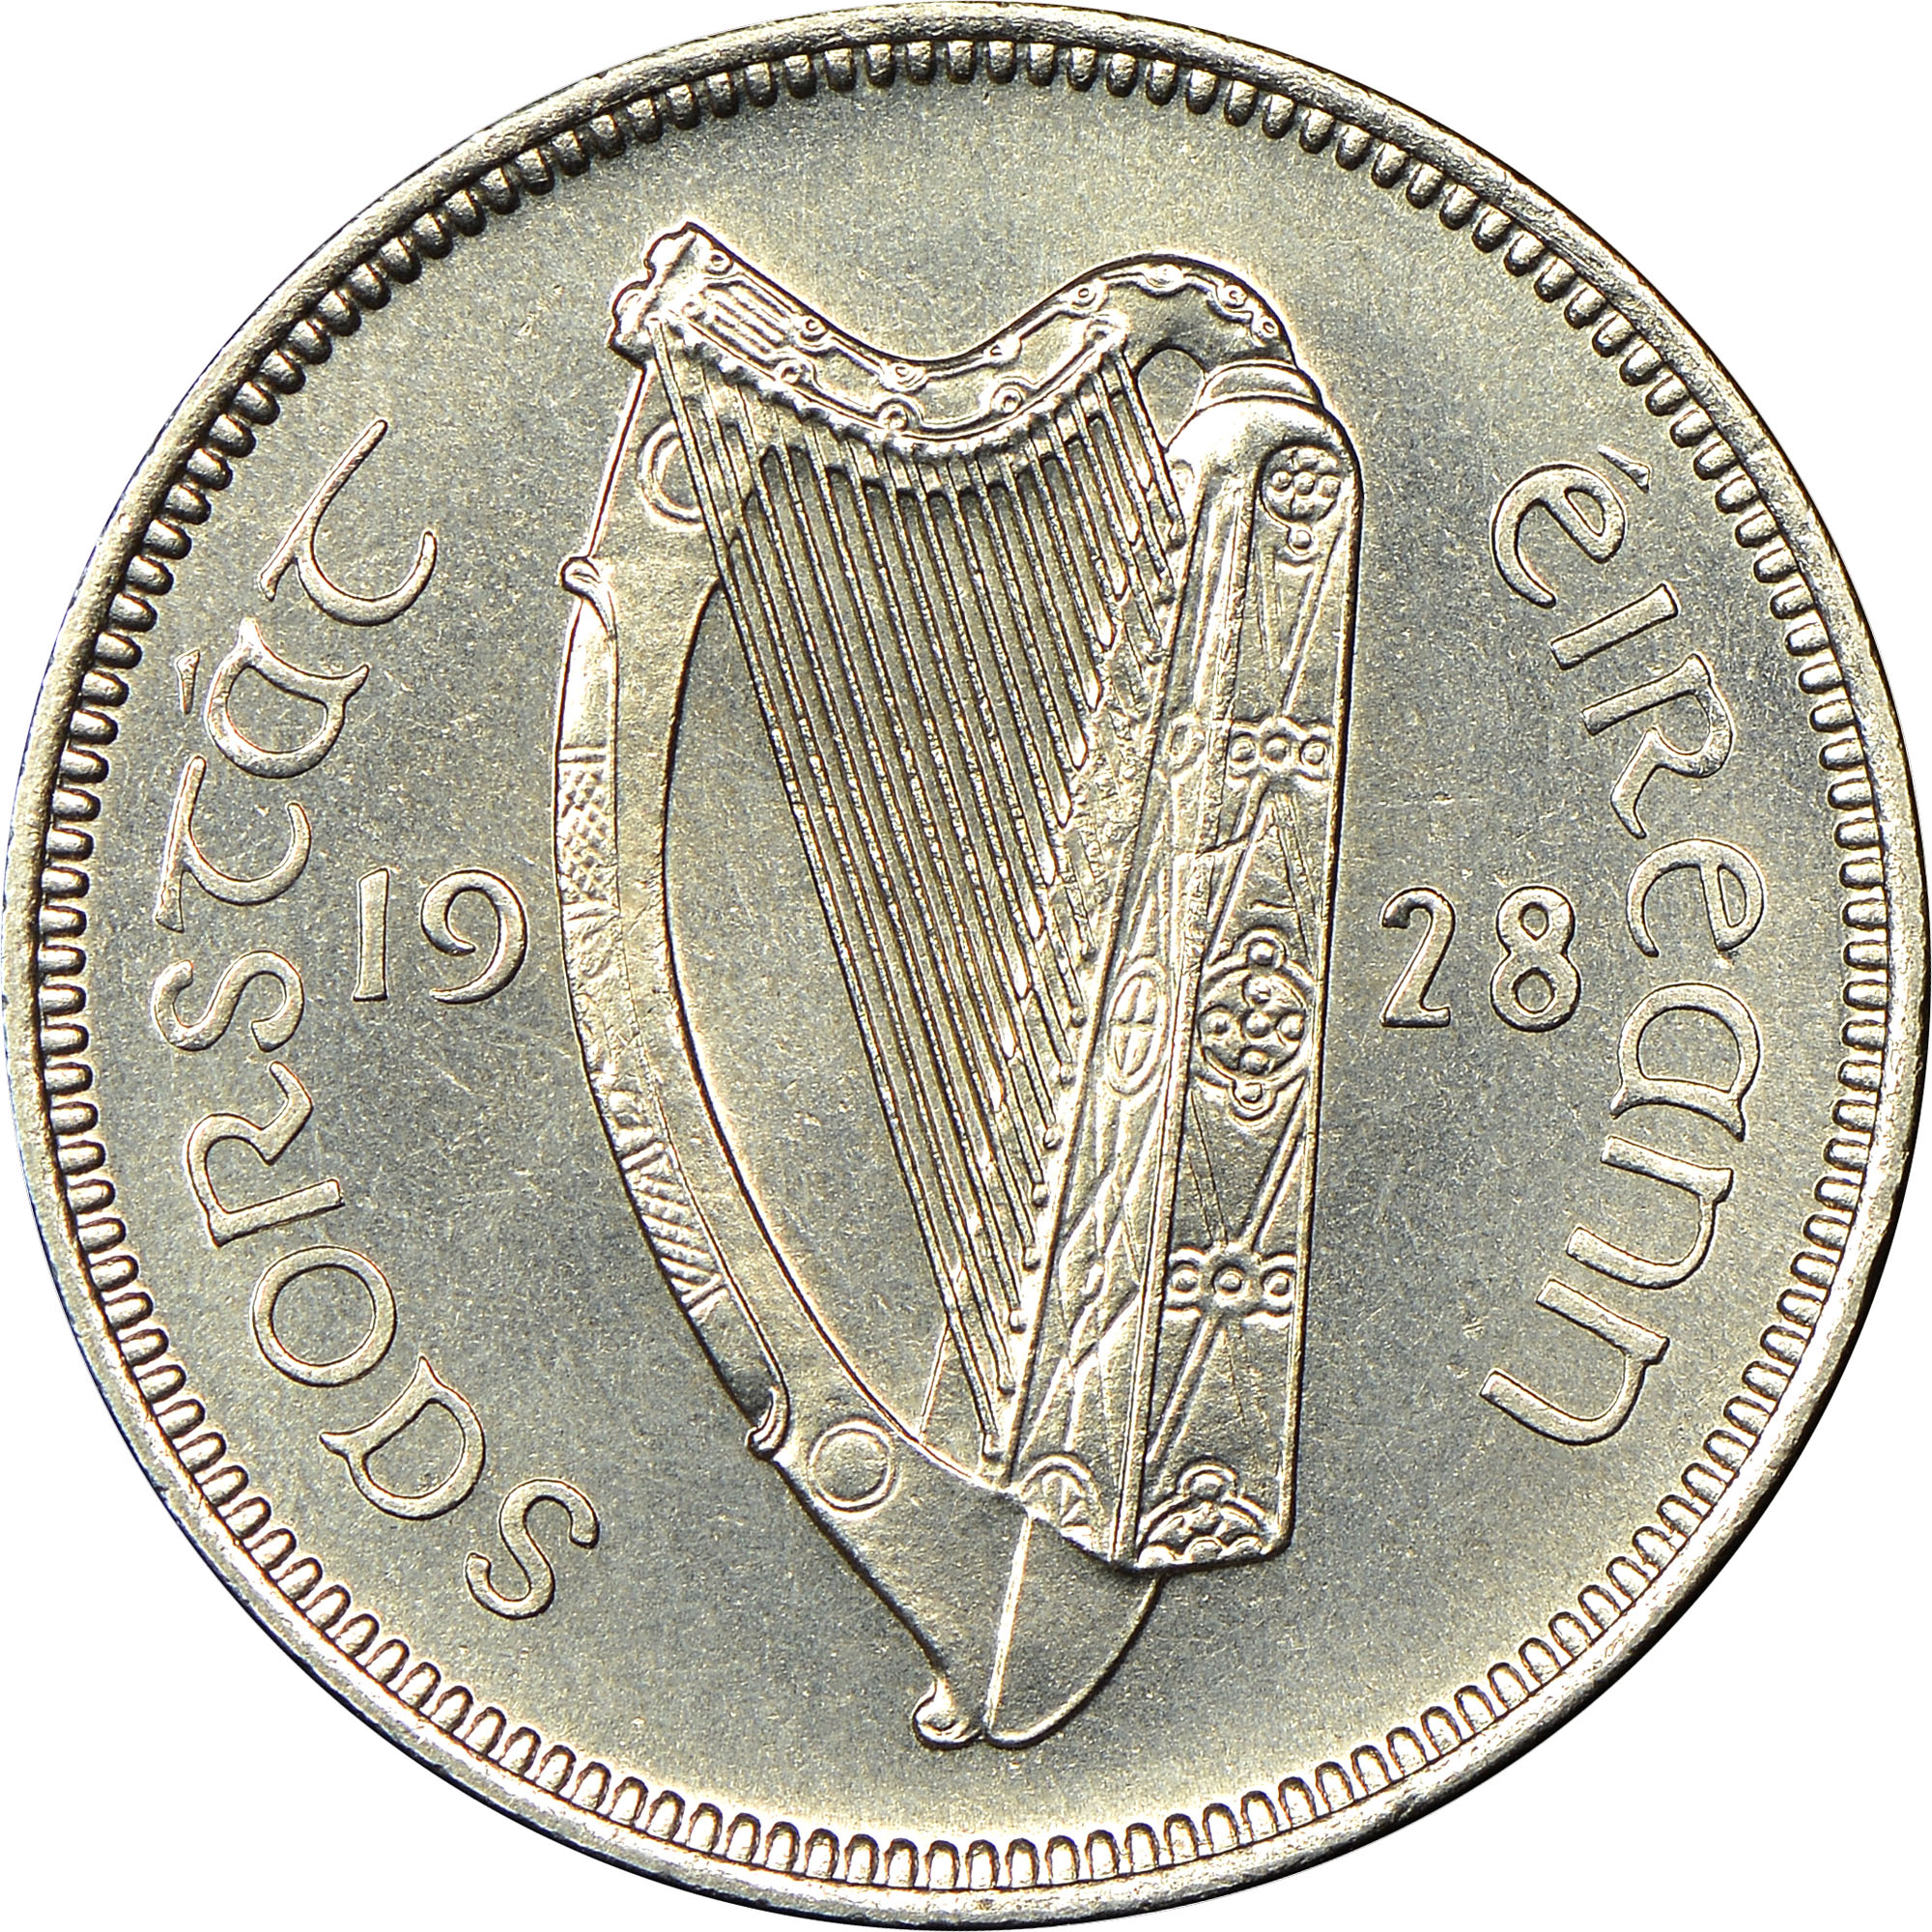 1928 3 pence coin value